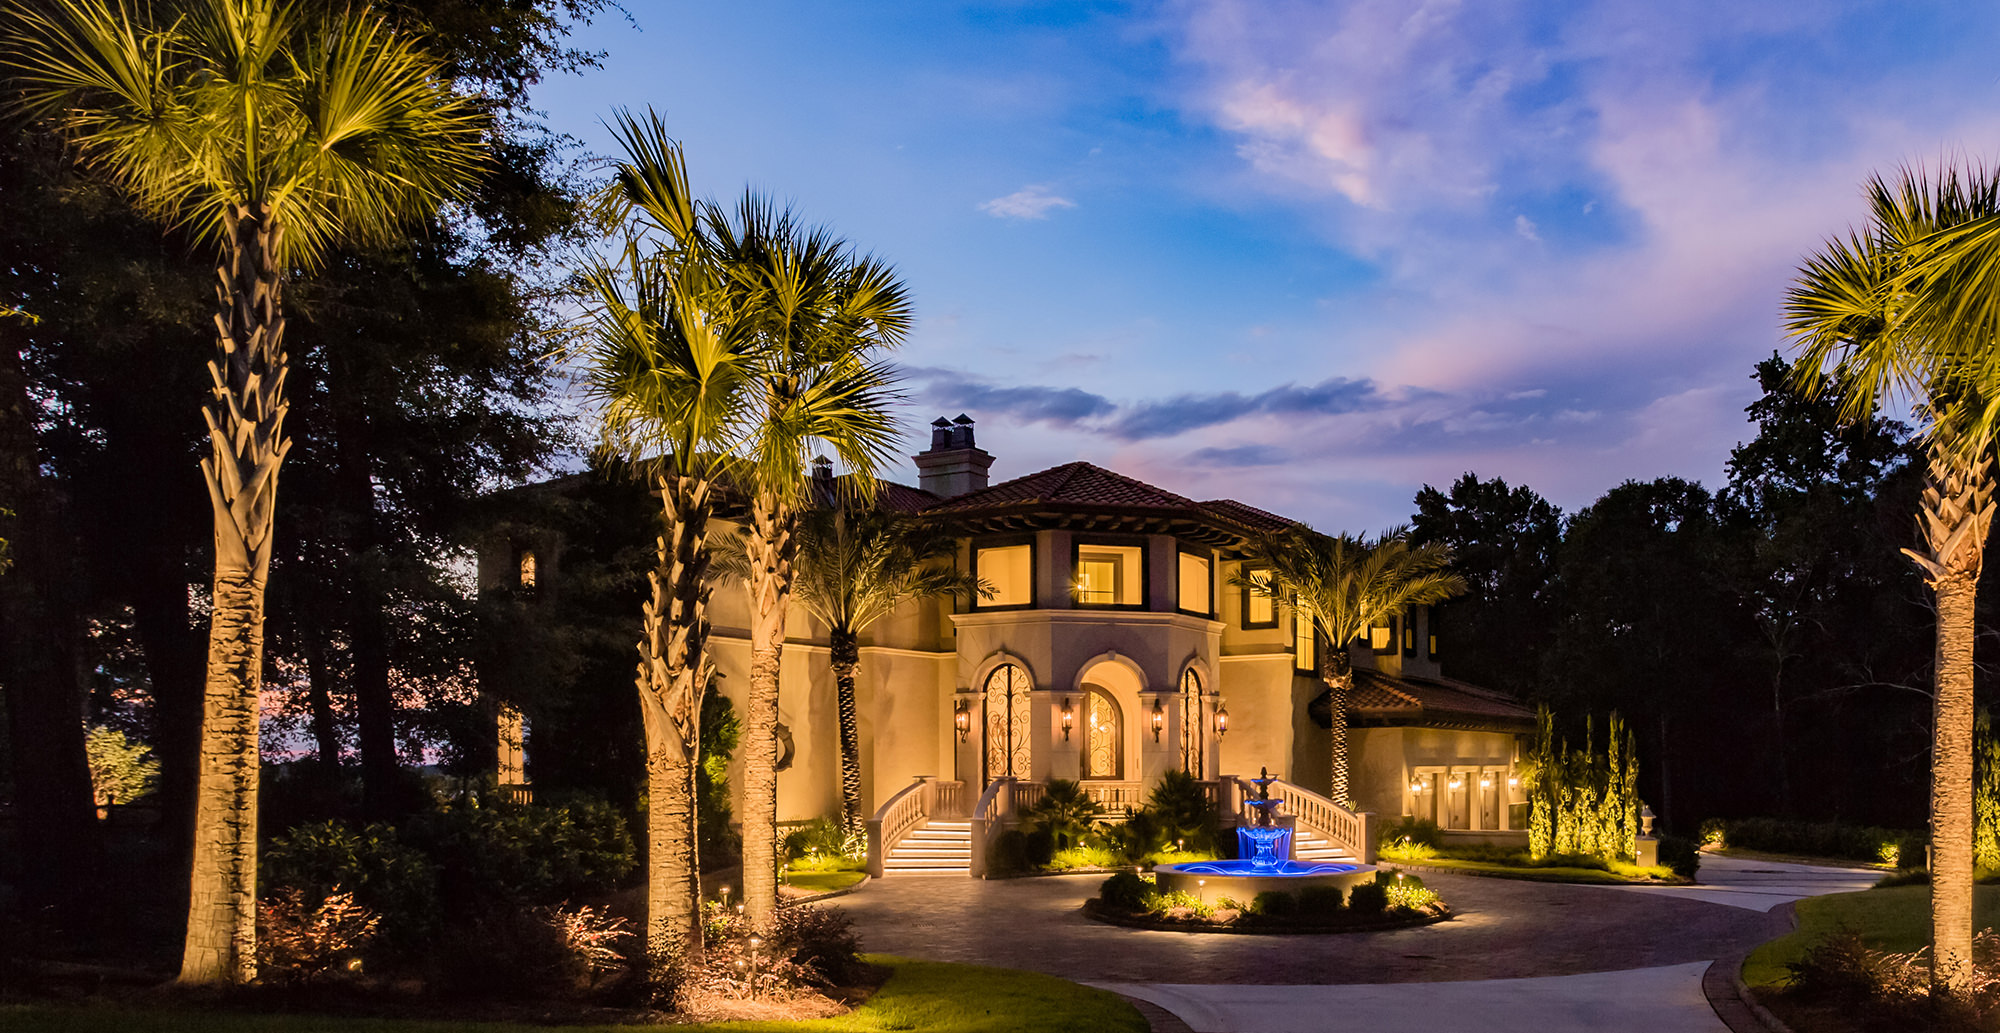 Fairhope architectural photography services offers luxury real estate photography services.